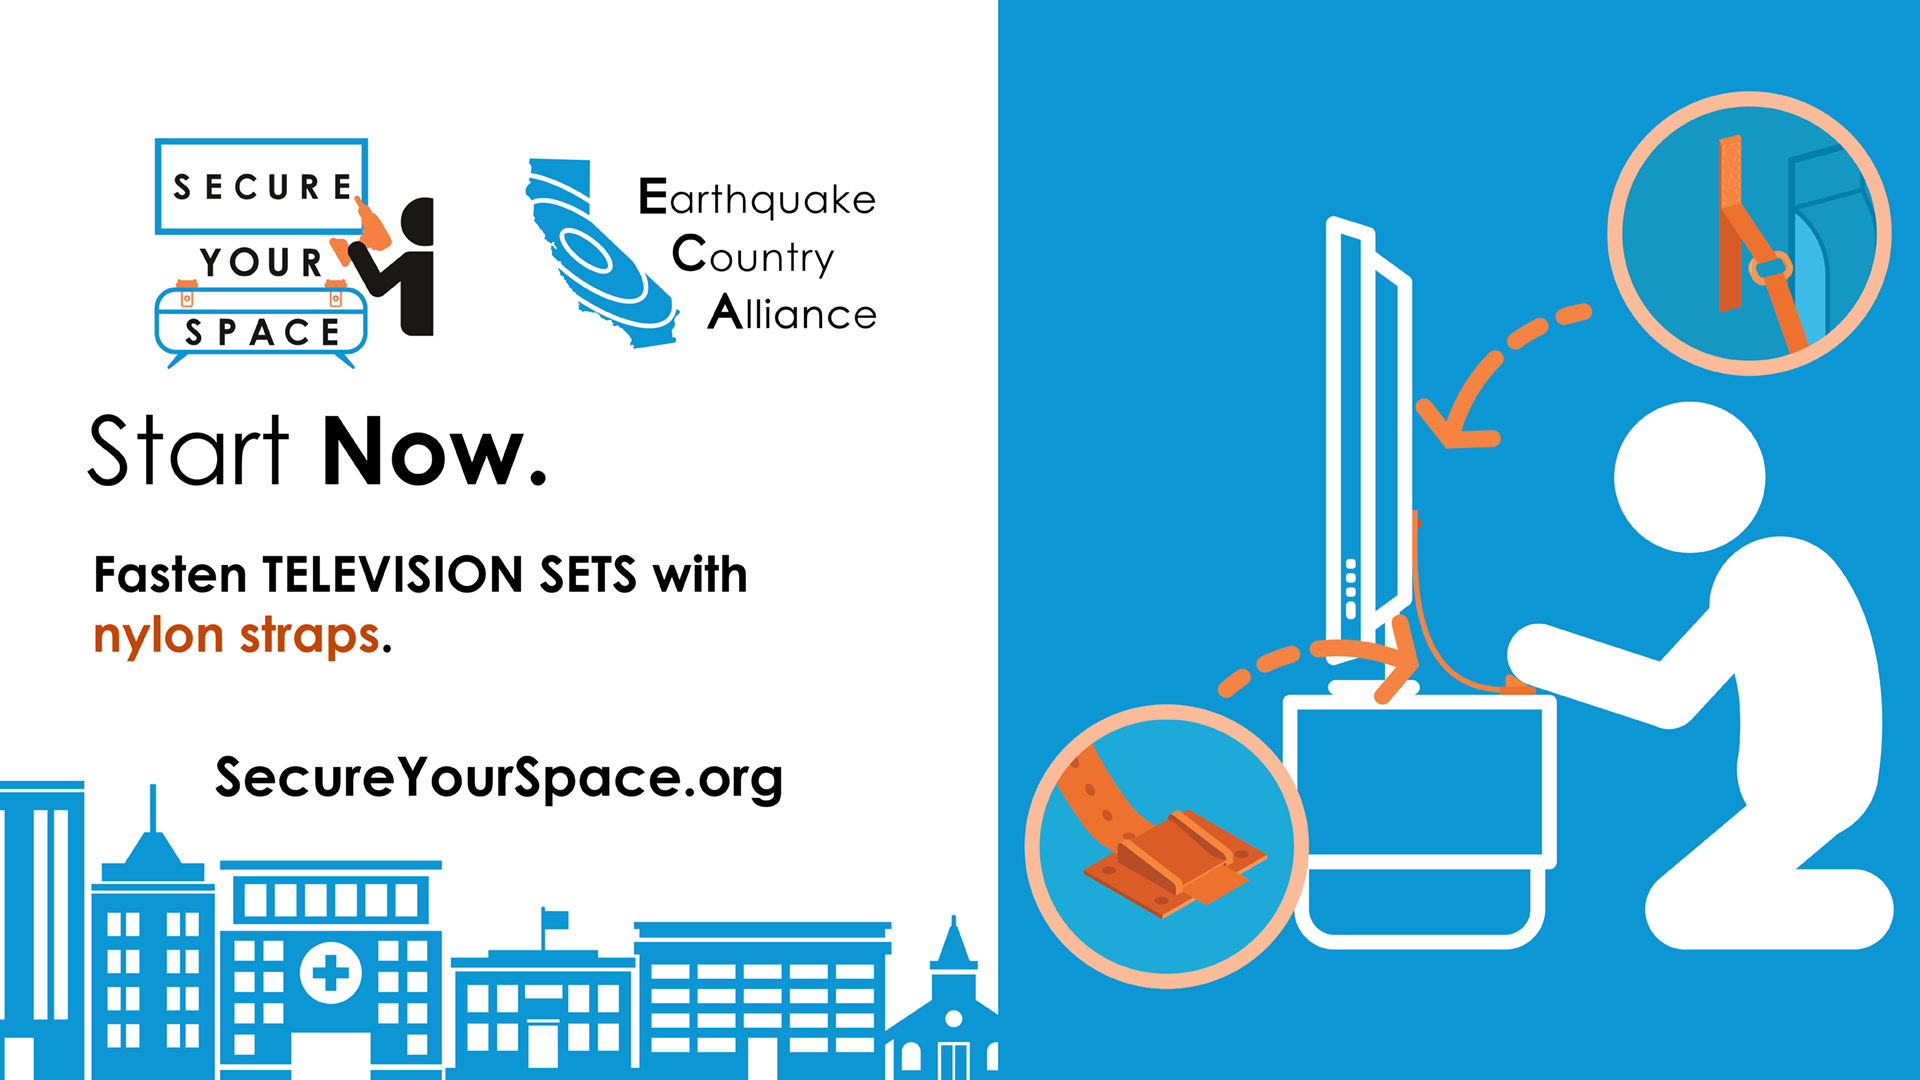 Graphic showing how to secure television sets for earthquake shaking with nylon straps, and promoting SecureYourSpace.org.